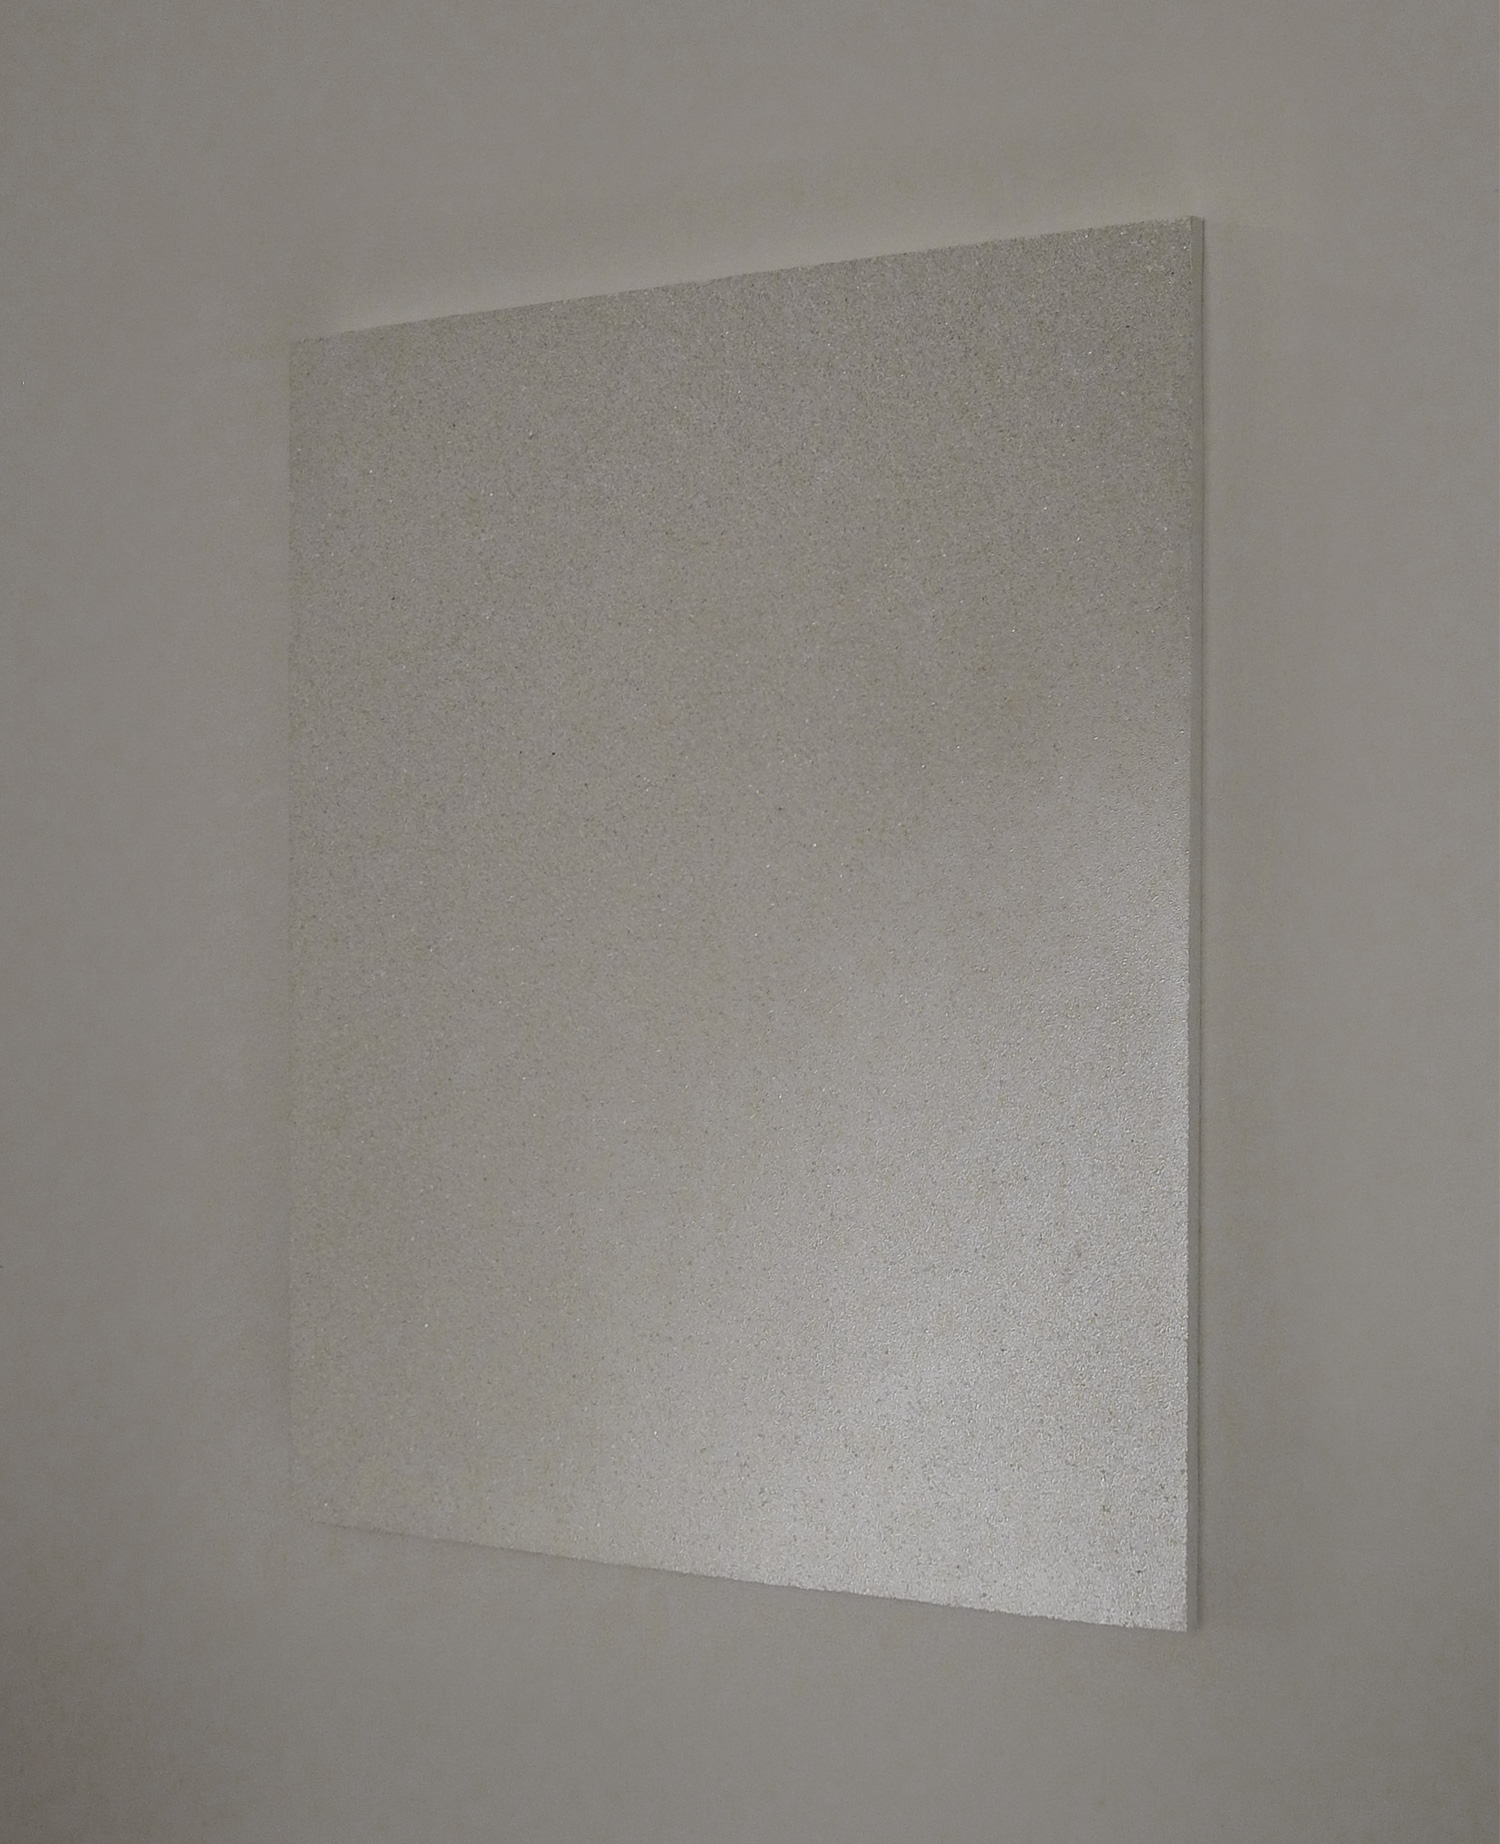 White-glass-painting-2-Buckley-72dpi-1500px-web.jpg